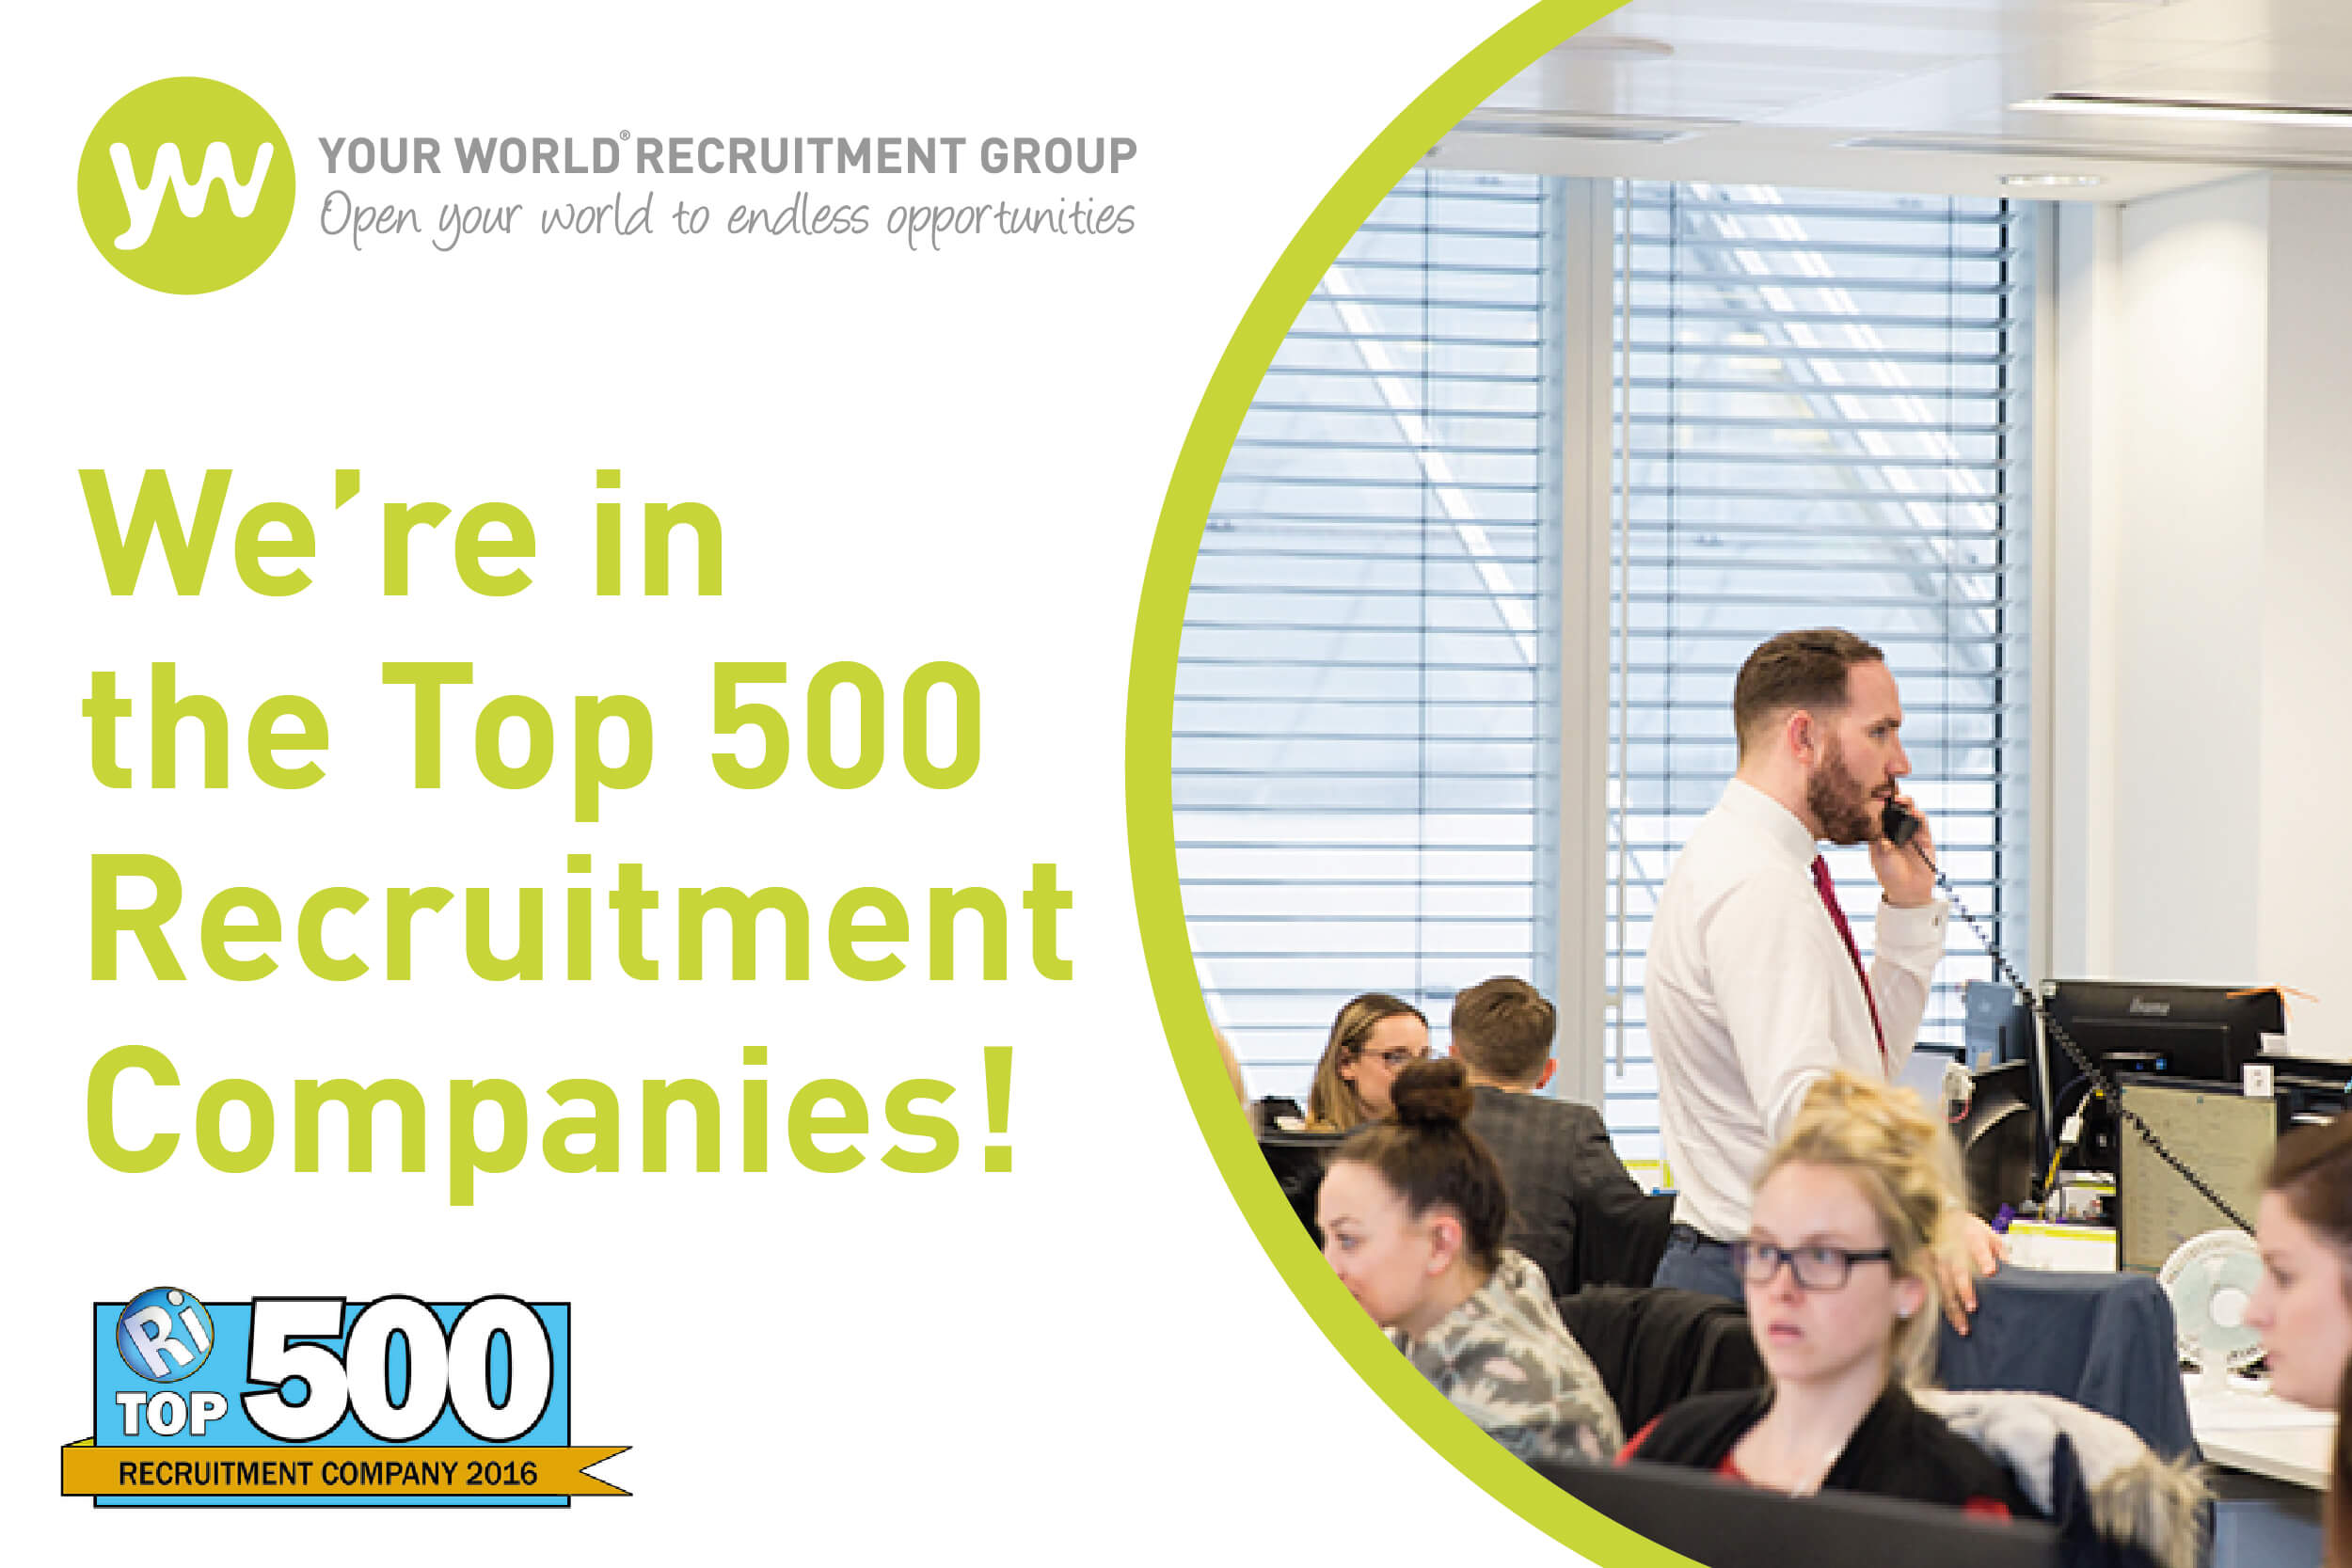 We're in Recruitment International's Top 500 Recruitment Companies